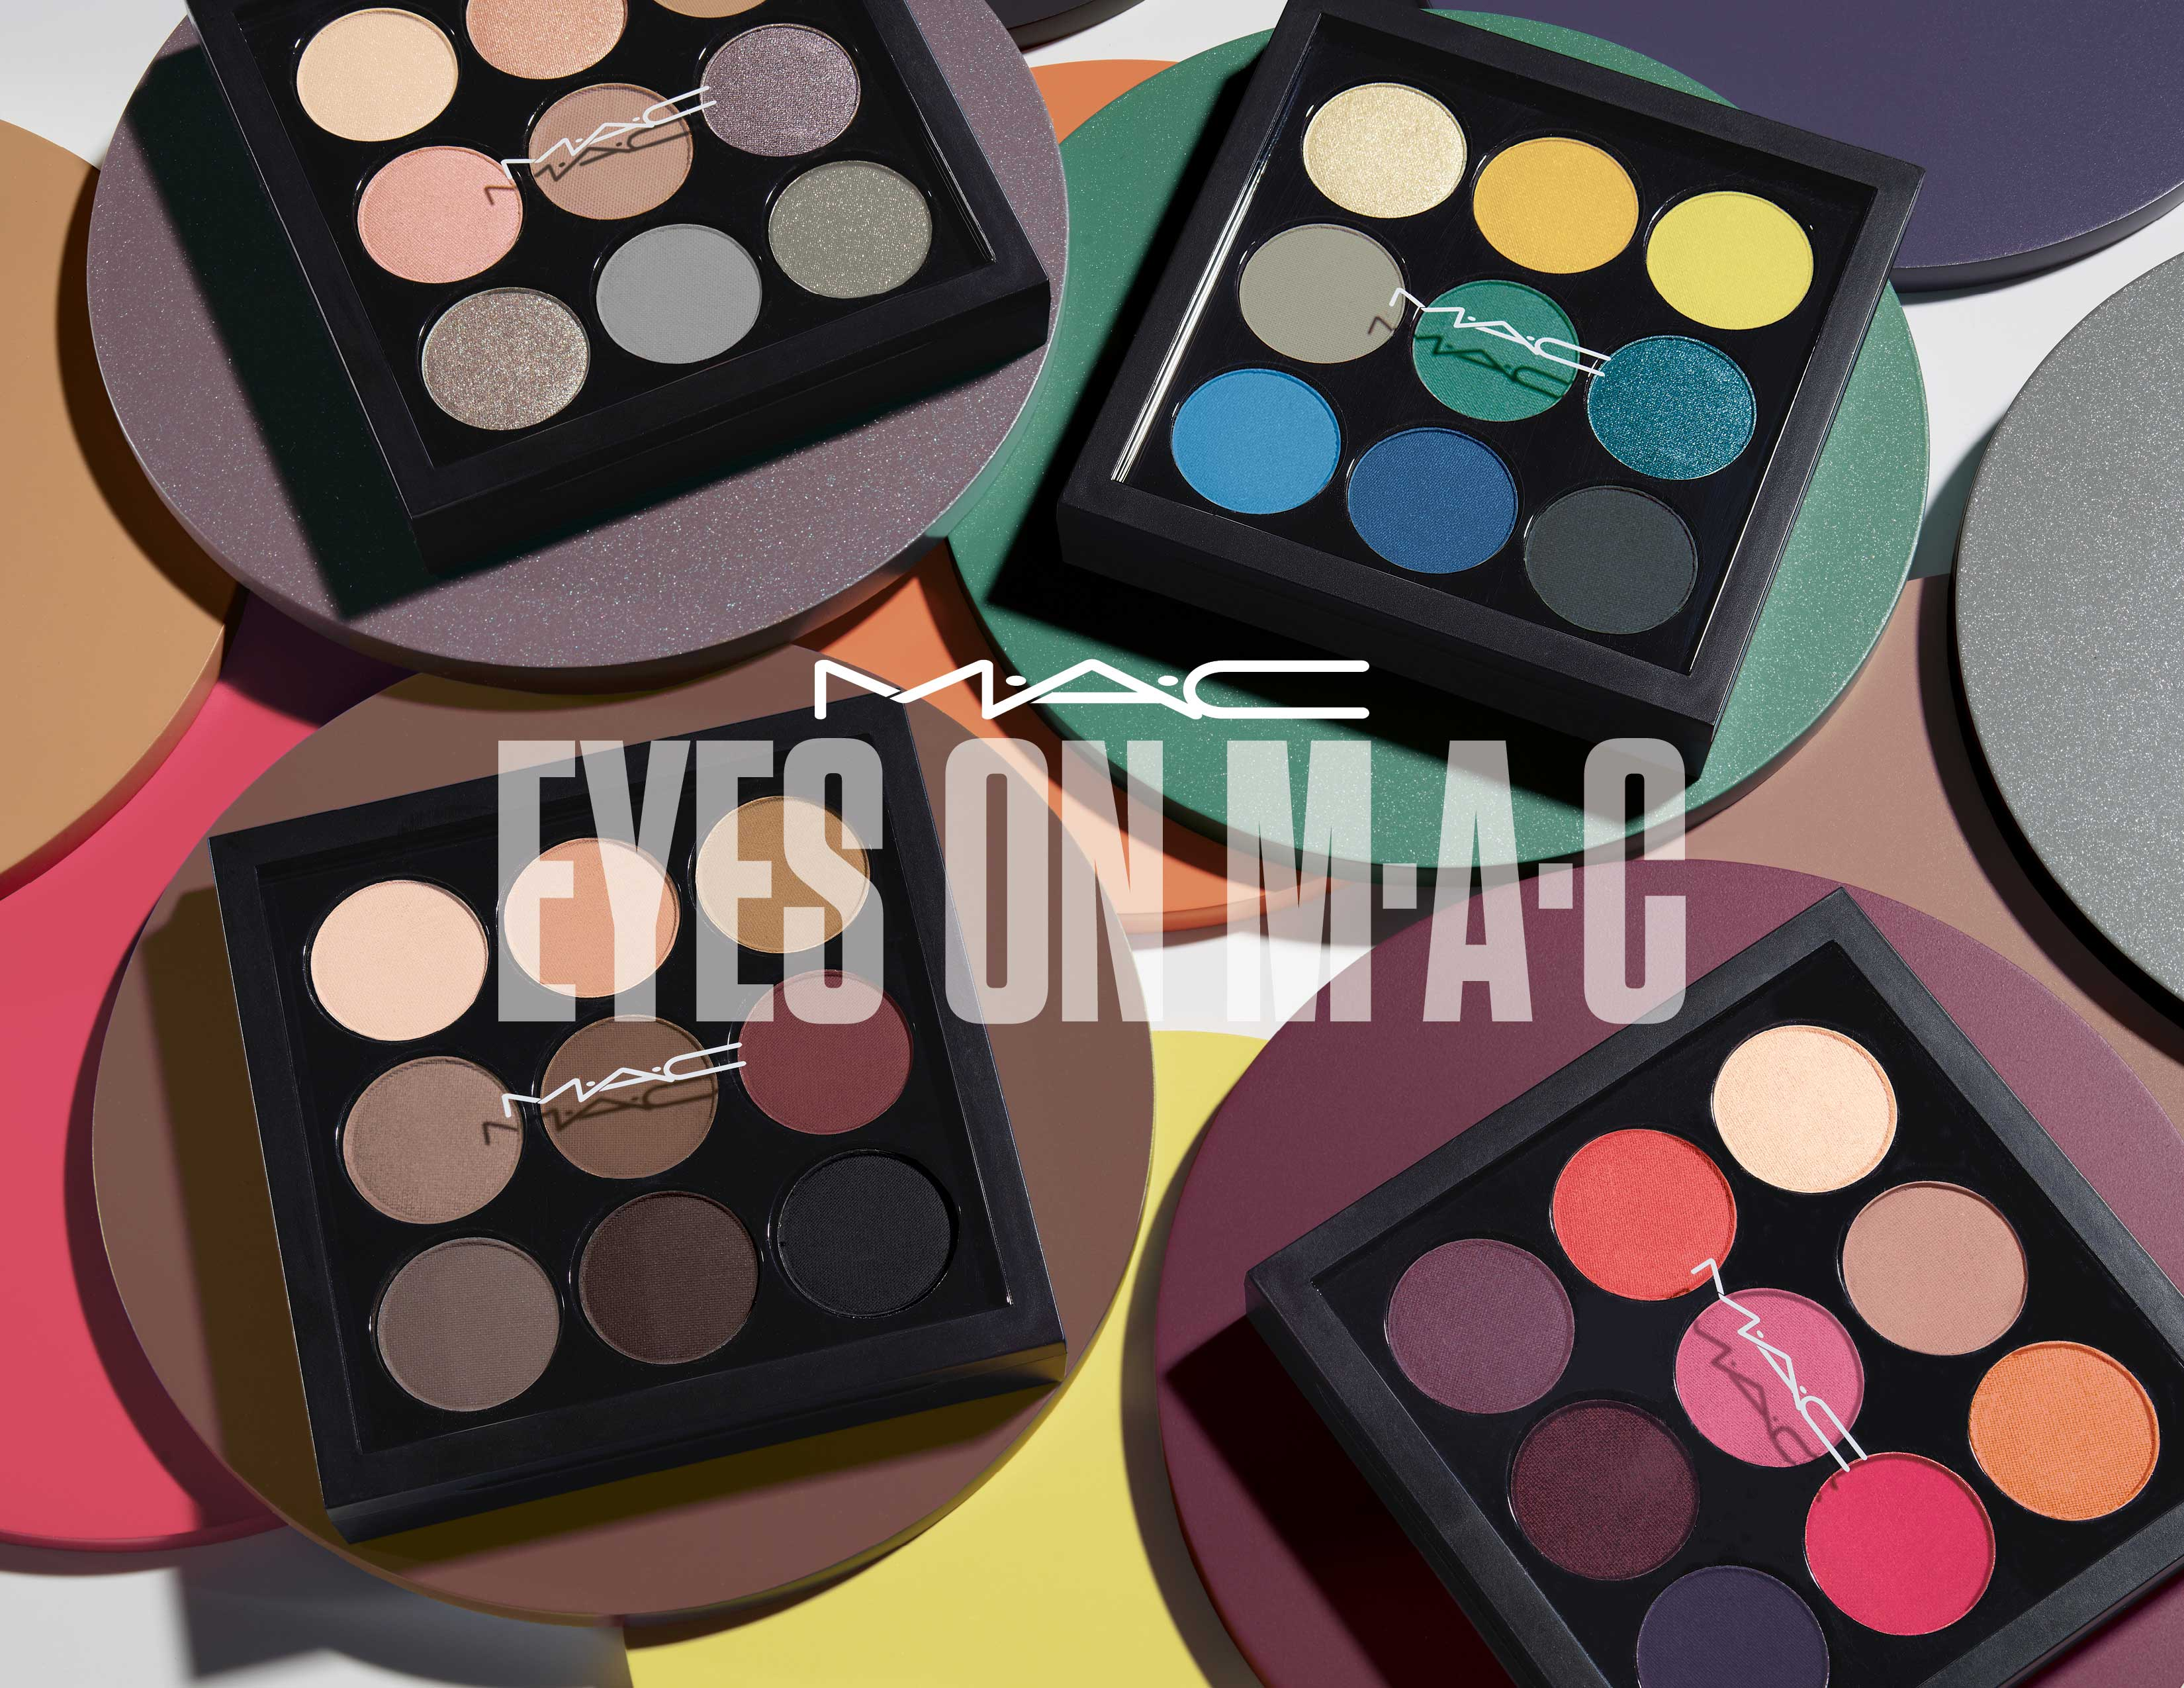 mac-eyes-on-mac-new-palettes-for-spring-2017